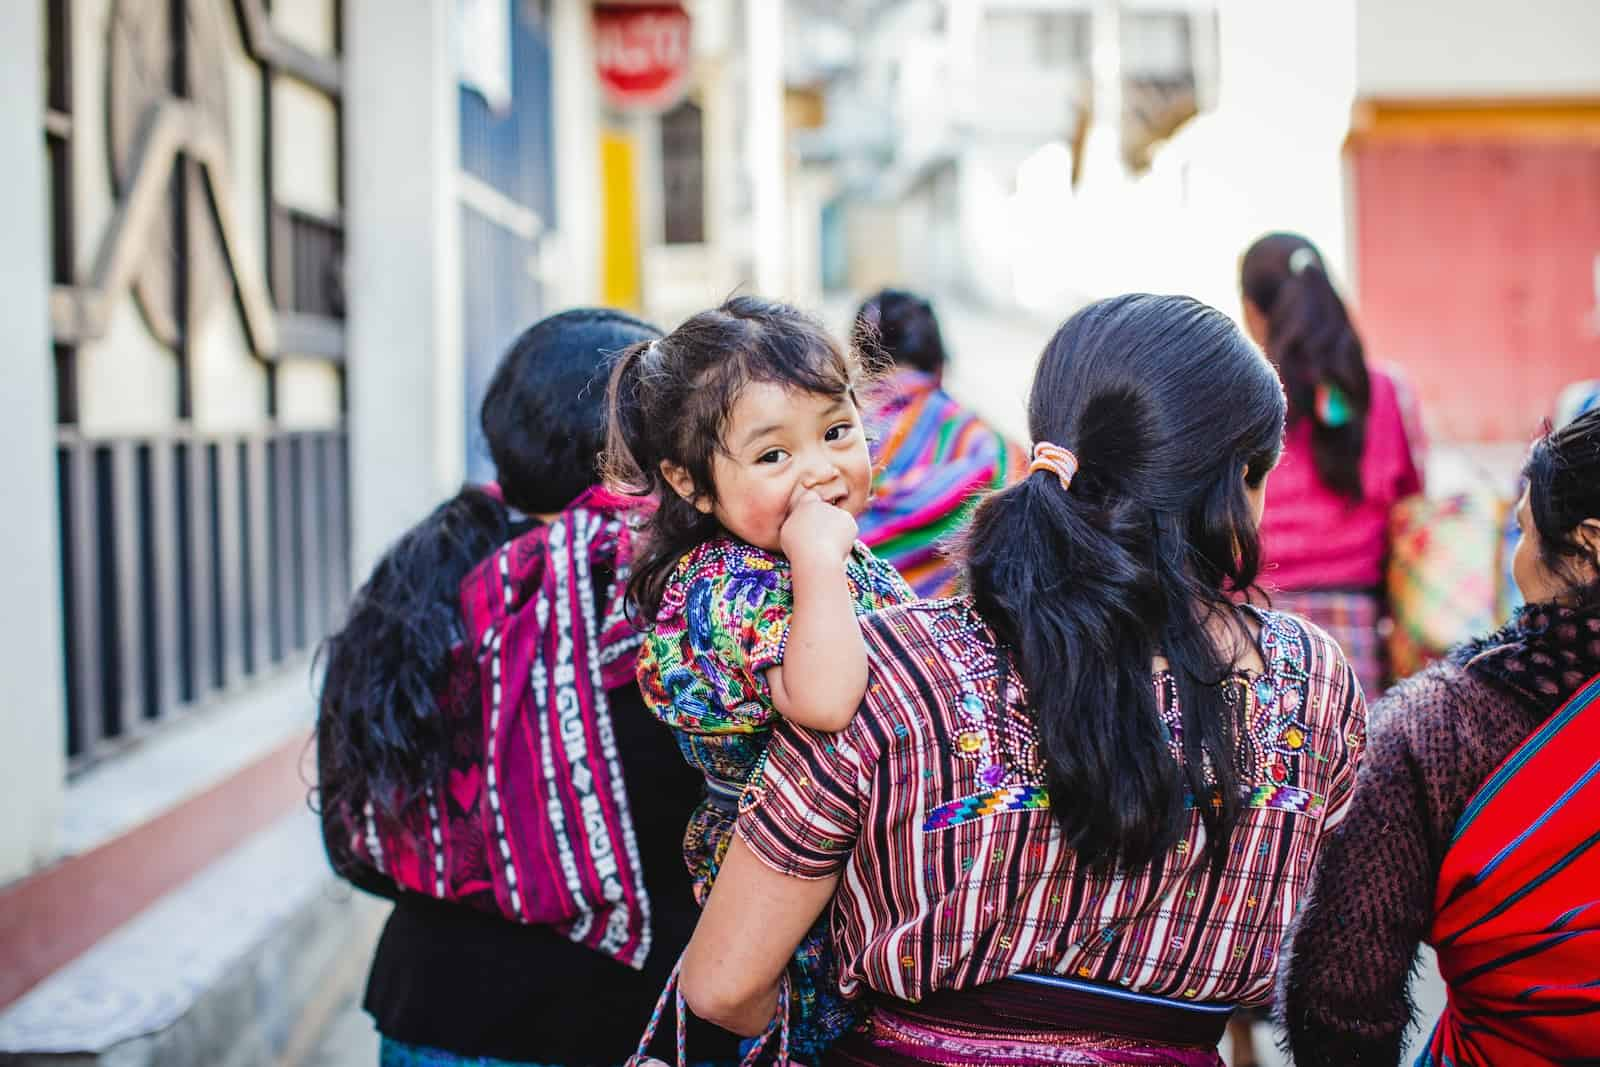 A baby is held by her mom, surrounded by other women walking down a street, wearing colorful clothing.